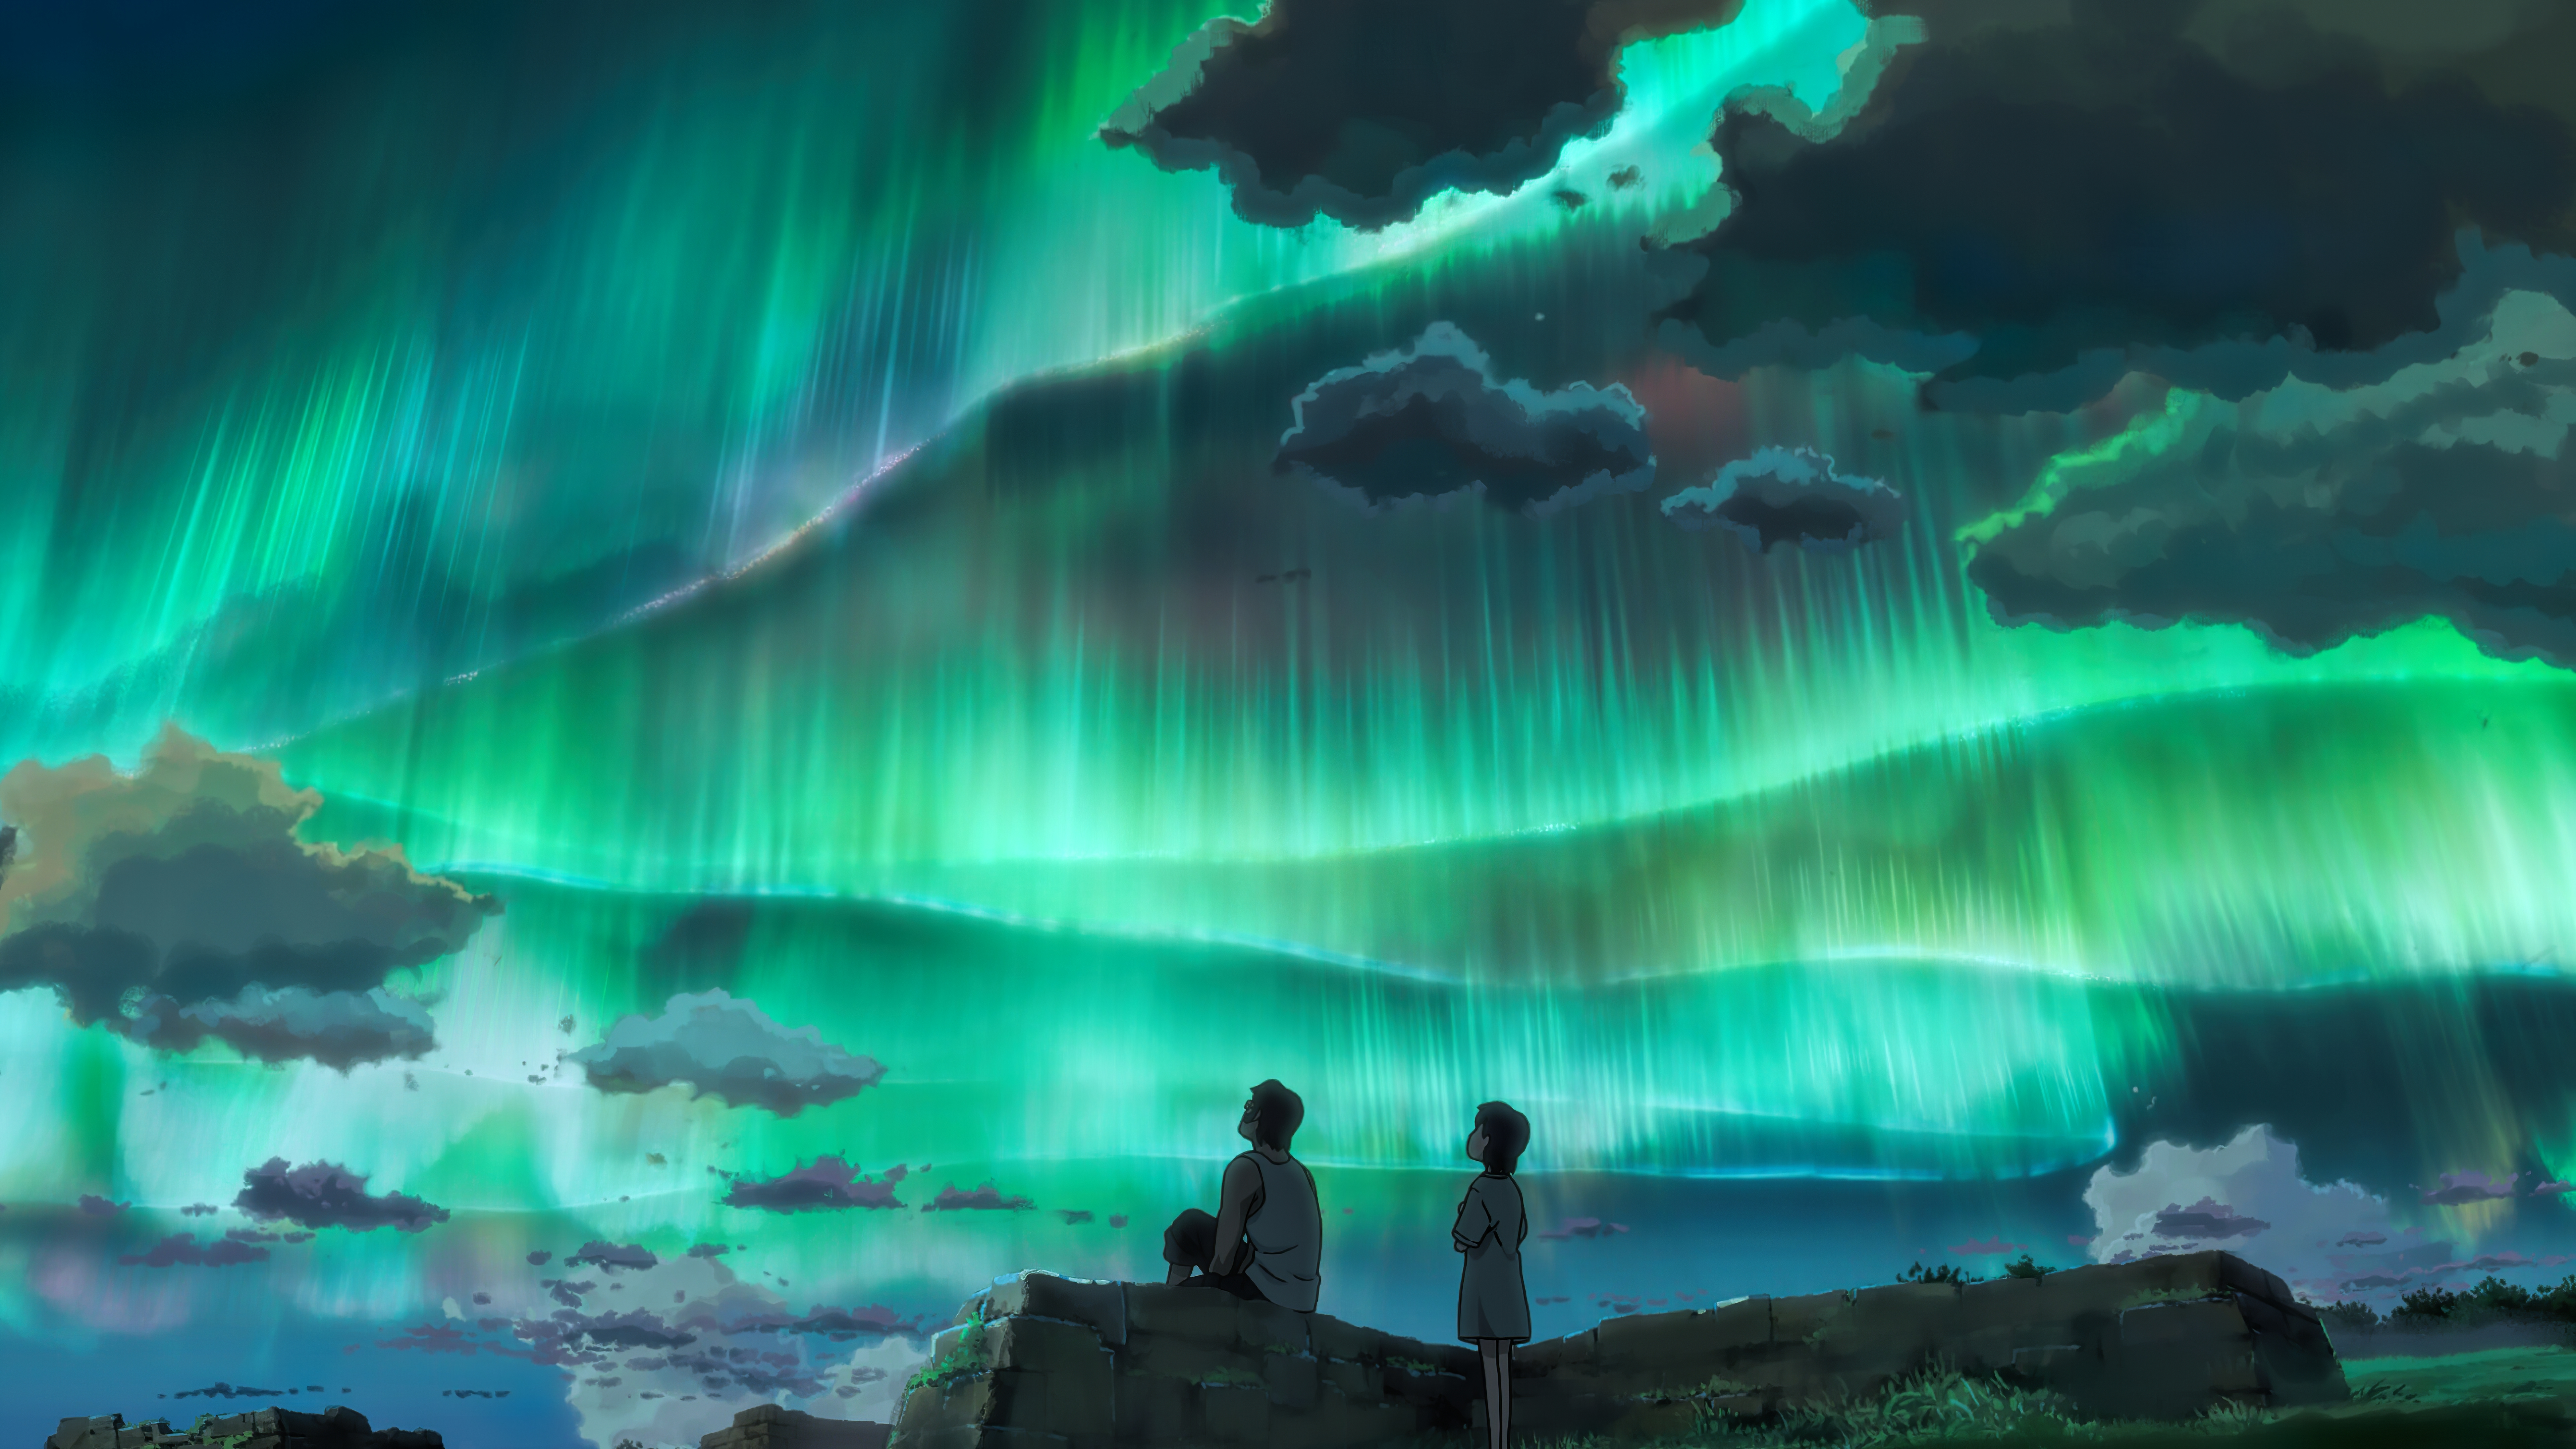 Anime Couple Looking At Aurora Sky 8k Hd Anime 4k Wallpapers